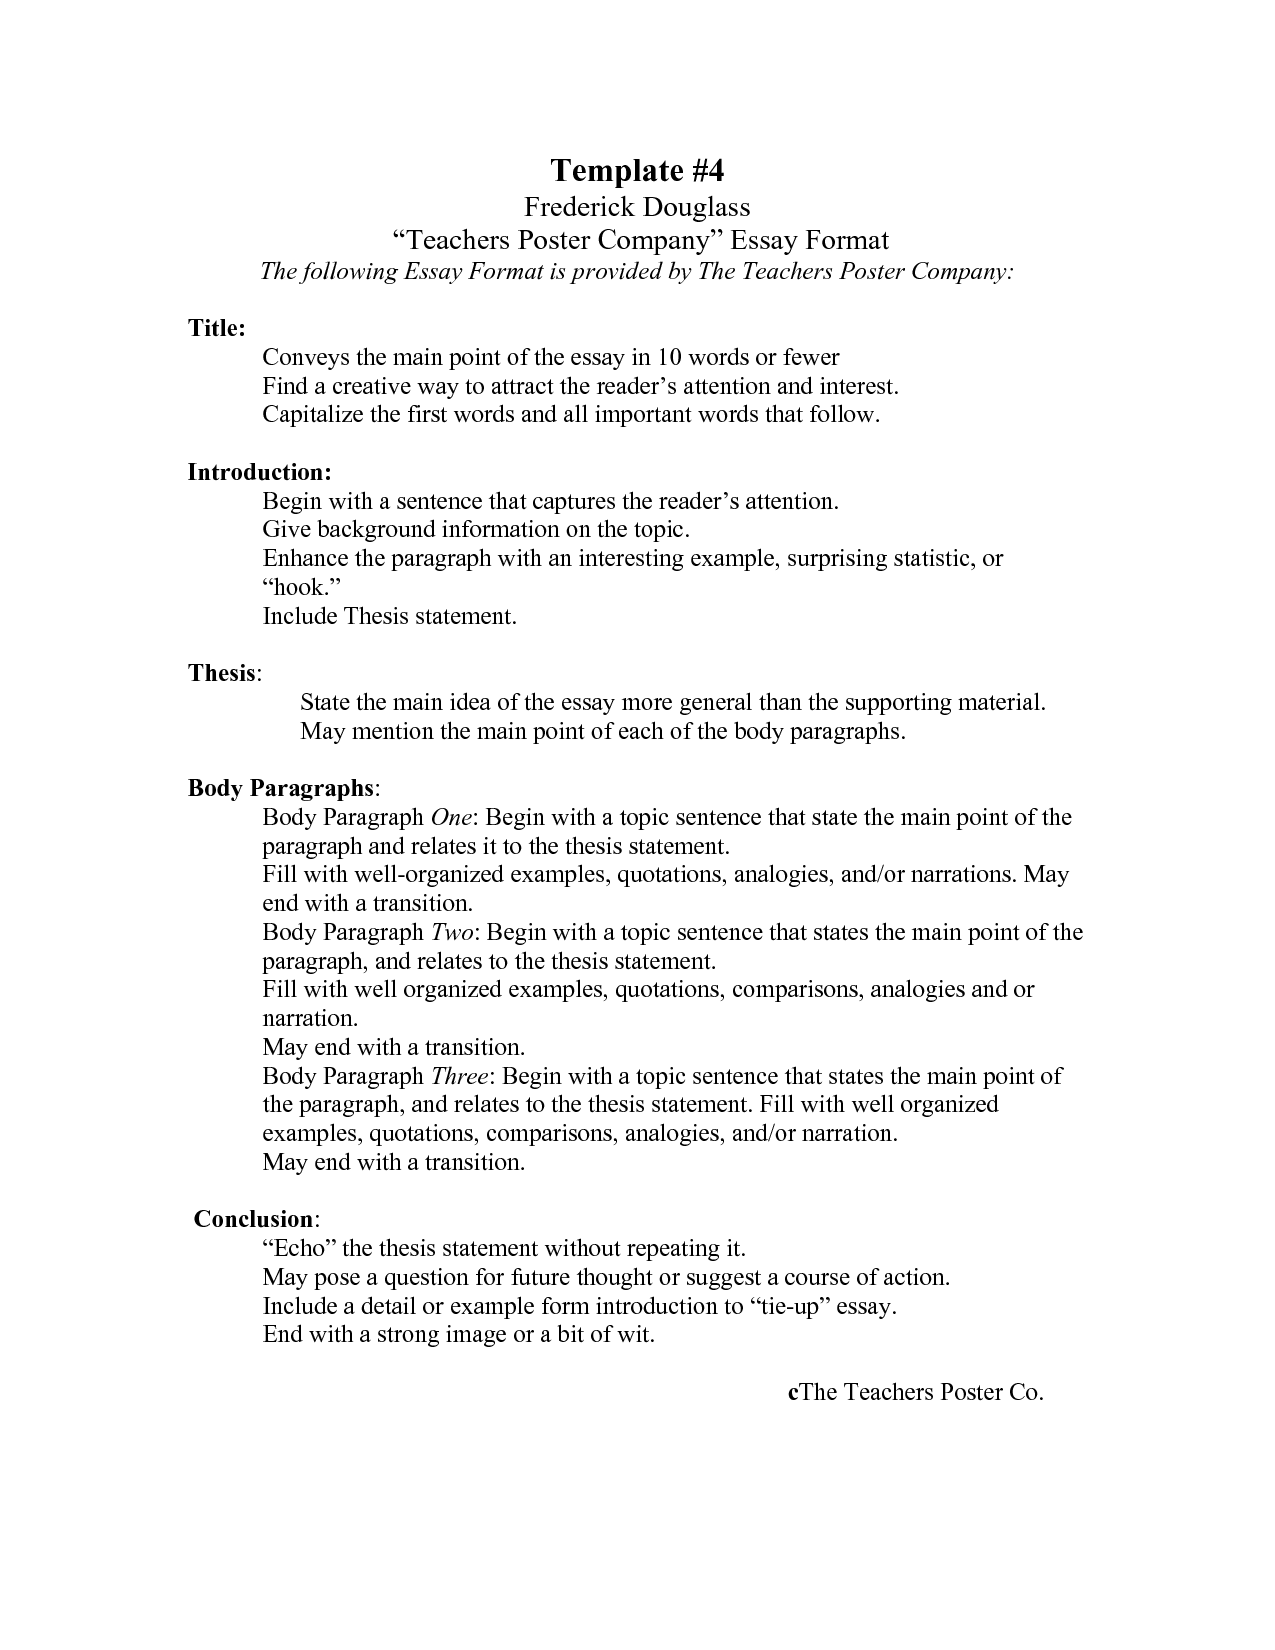 examples of essay outlines format sample essay outlines a level a efce a a cac f f e c jpg